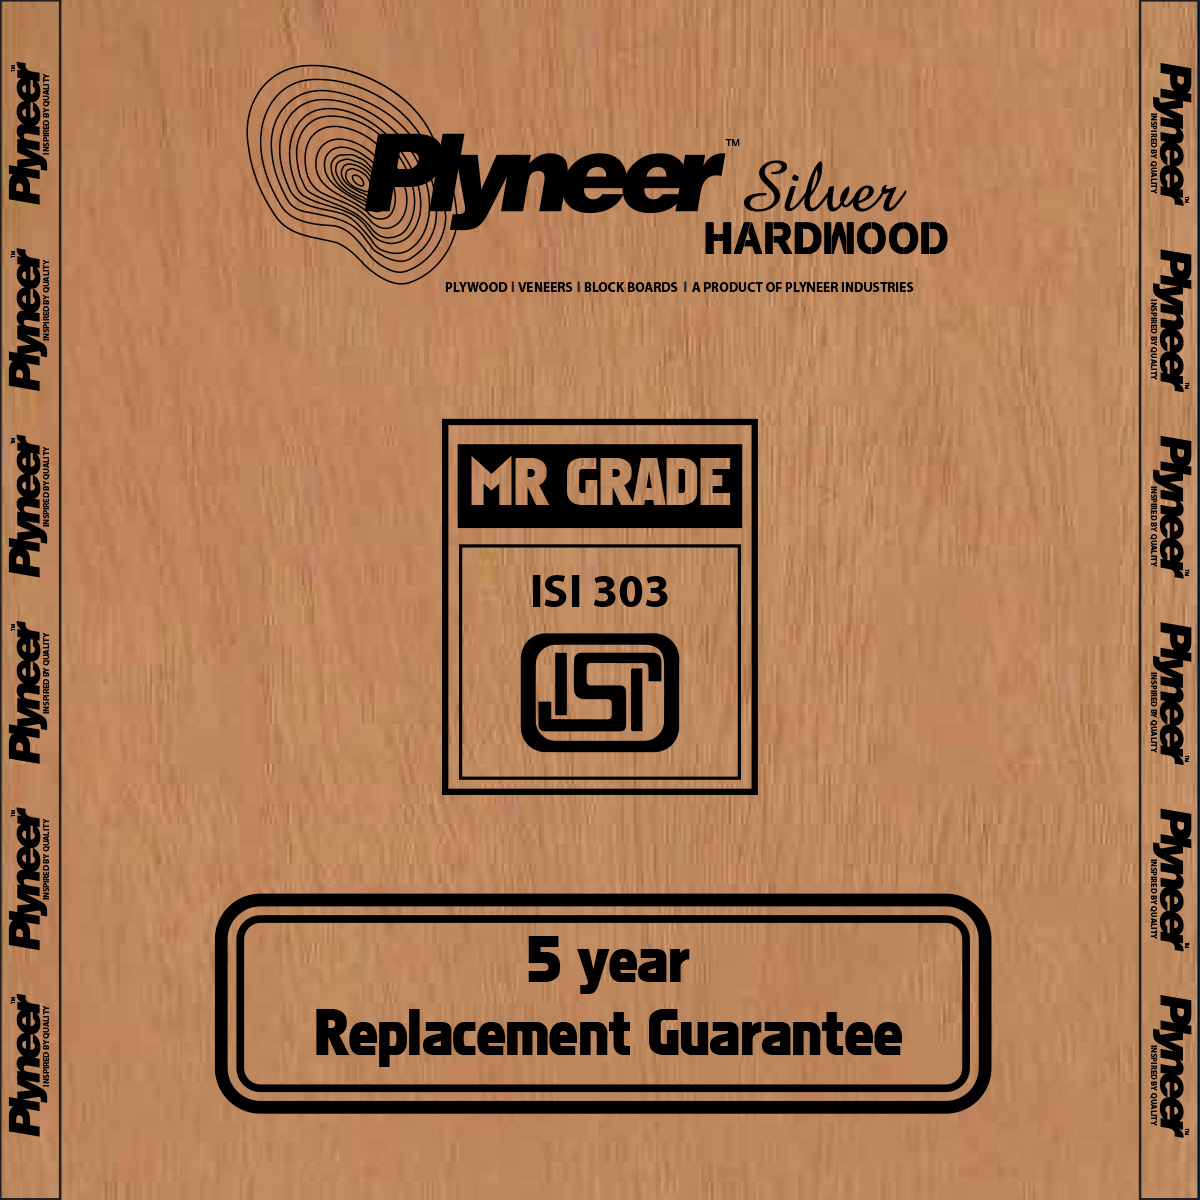 Plyneer Silver M.R. Hardwood Commercial Plywood - 5 Years Replacement Guarantee*